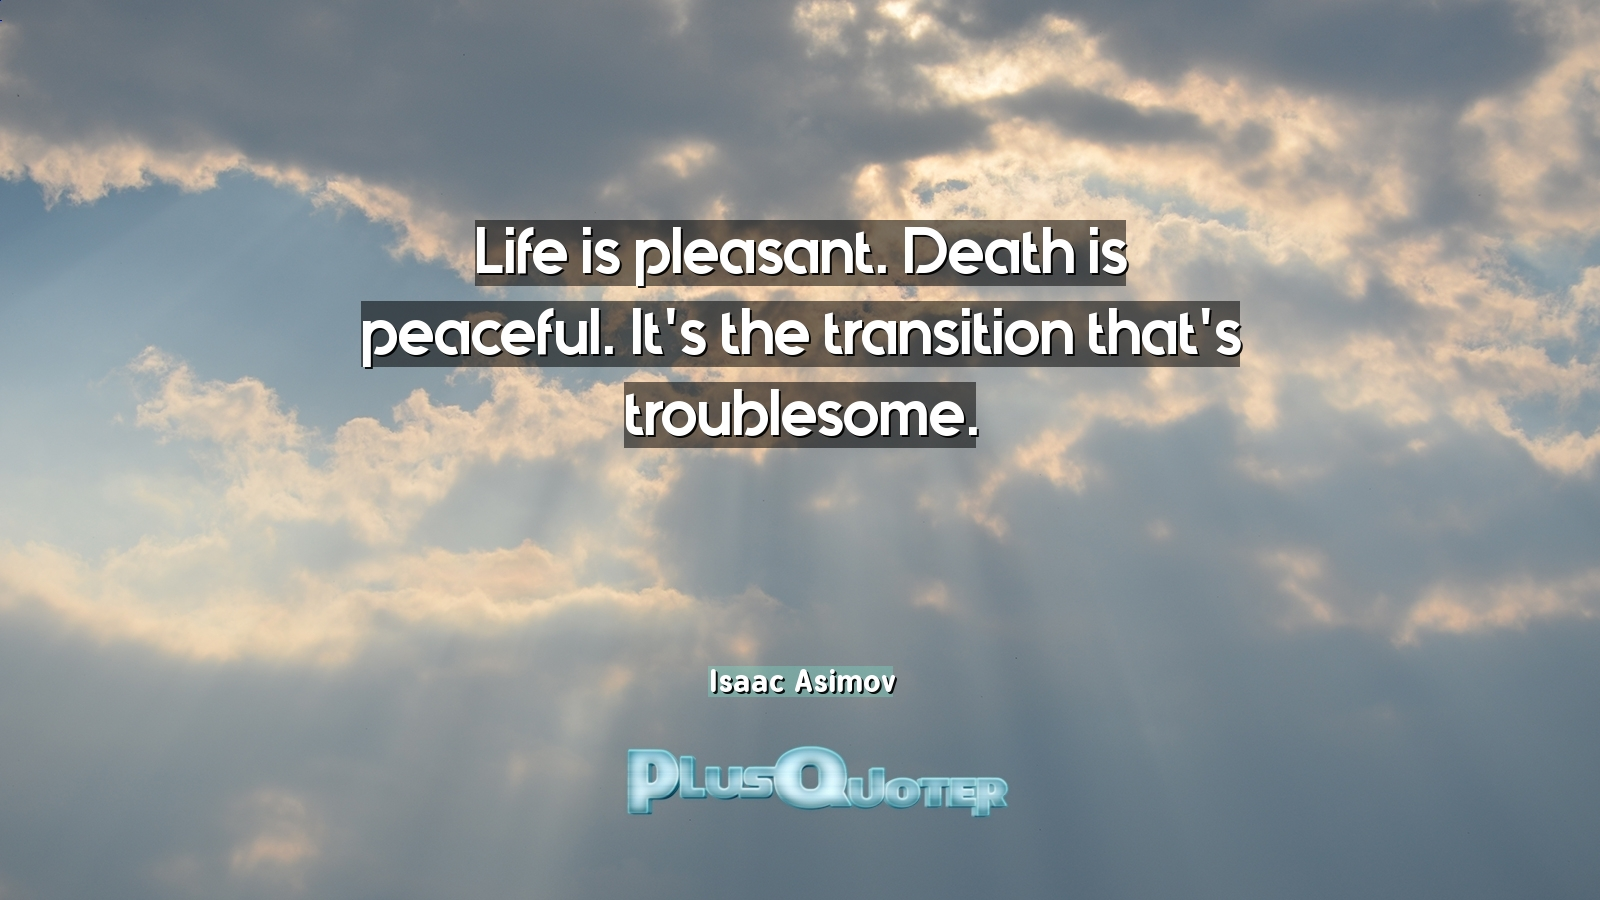 Quotes For Life And Death Life Is Pleasantdeath Is Peacefulit's The Transition That's